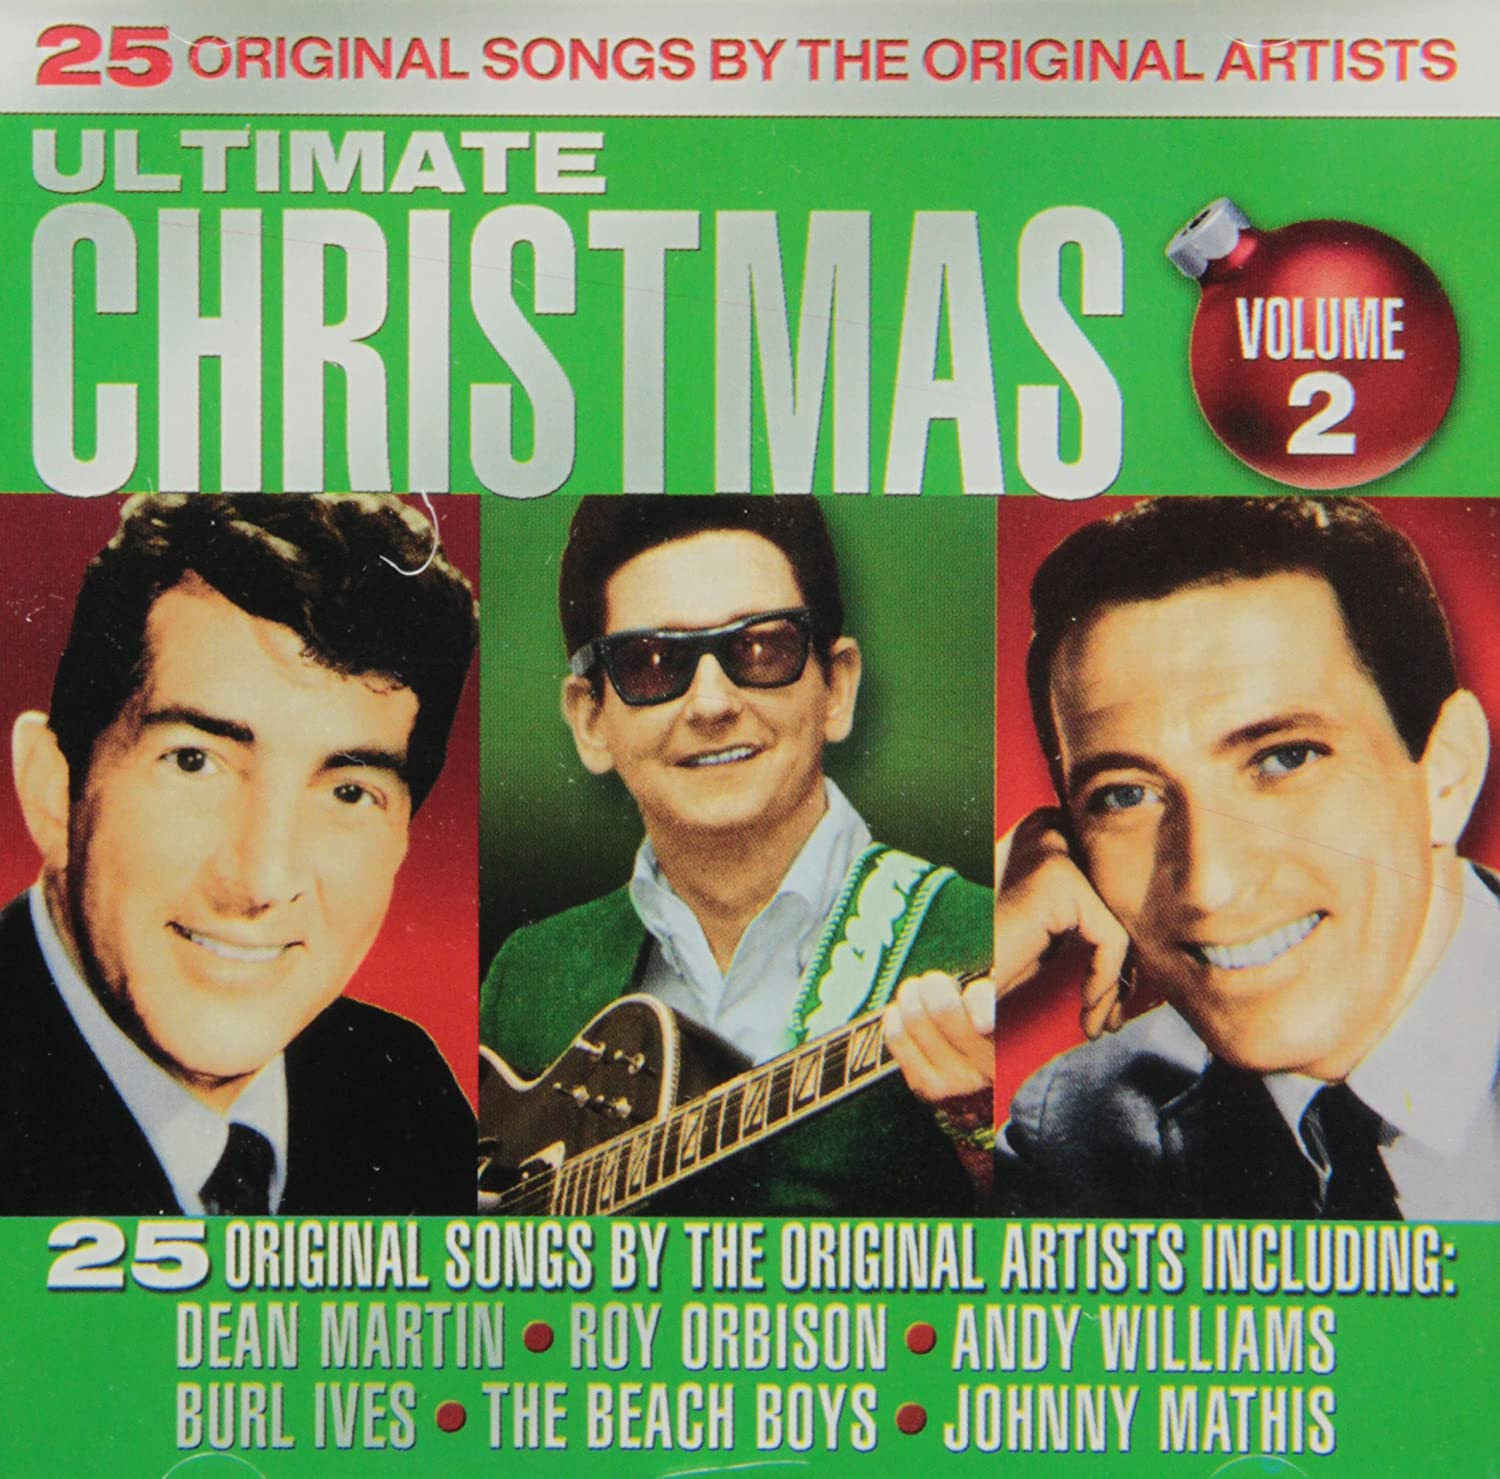 VARIOUS ARTISTS - The Ultimate Christmas Album, Vol. 2 - Amazon.com ...